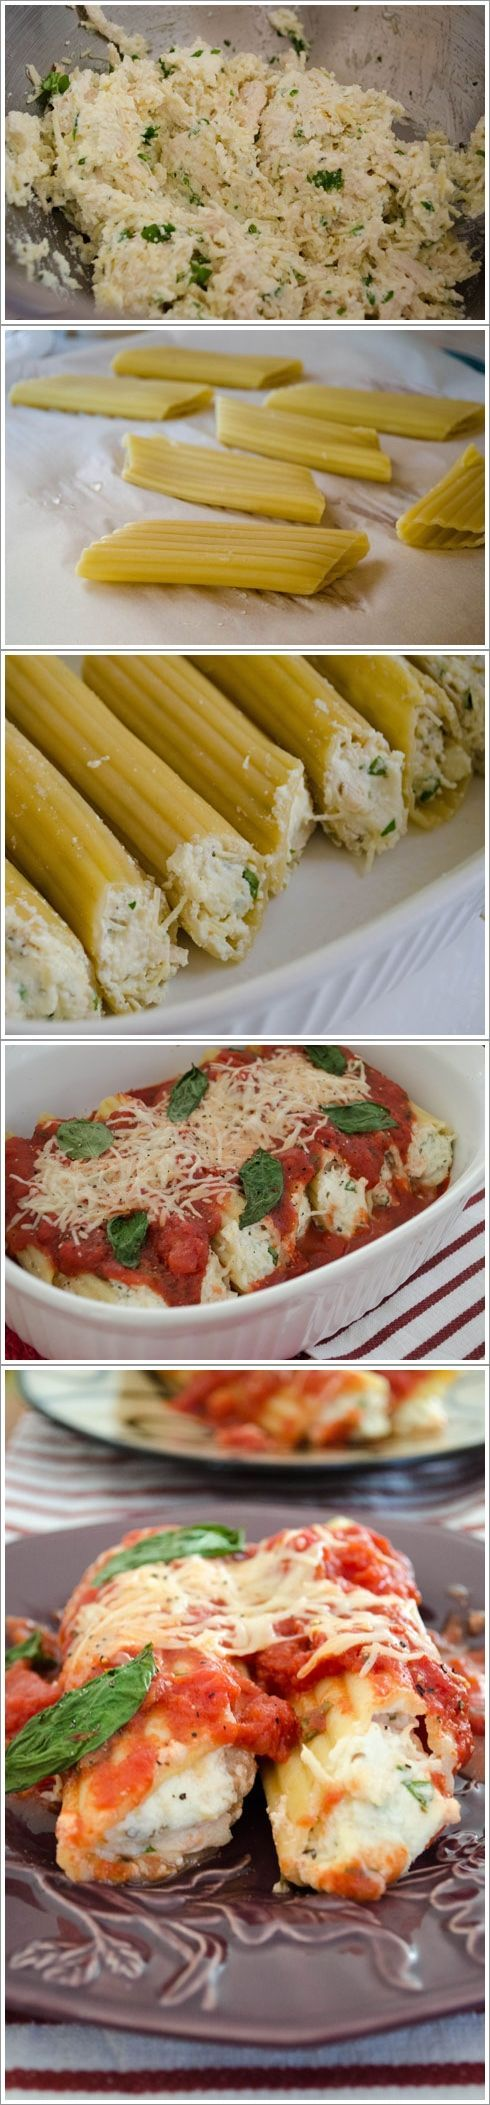 Parmesan Chicken Manicotti… YUM! #recipes #italian #pasta